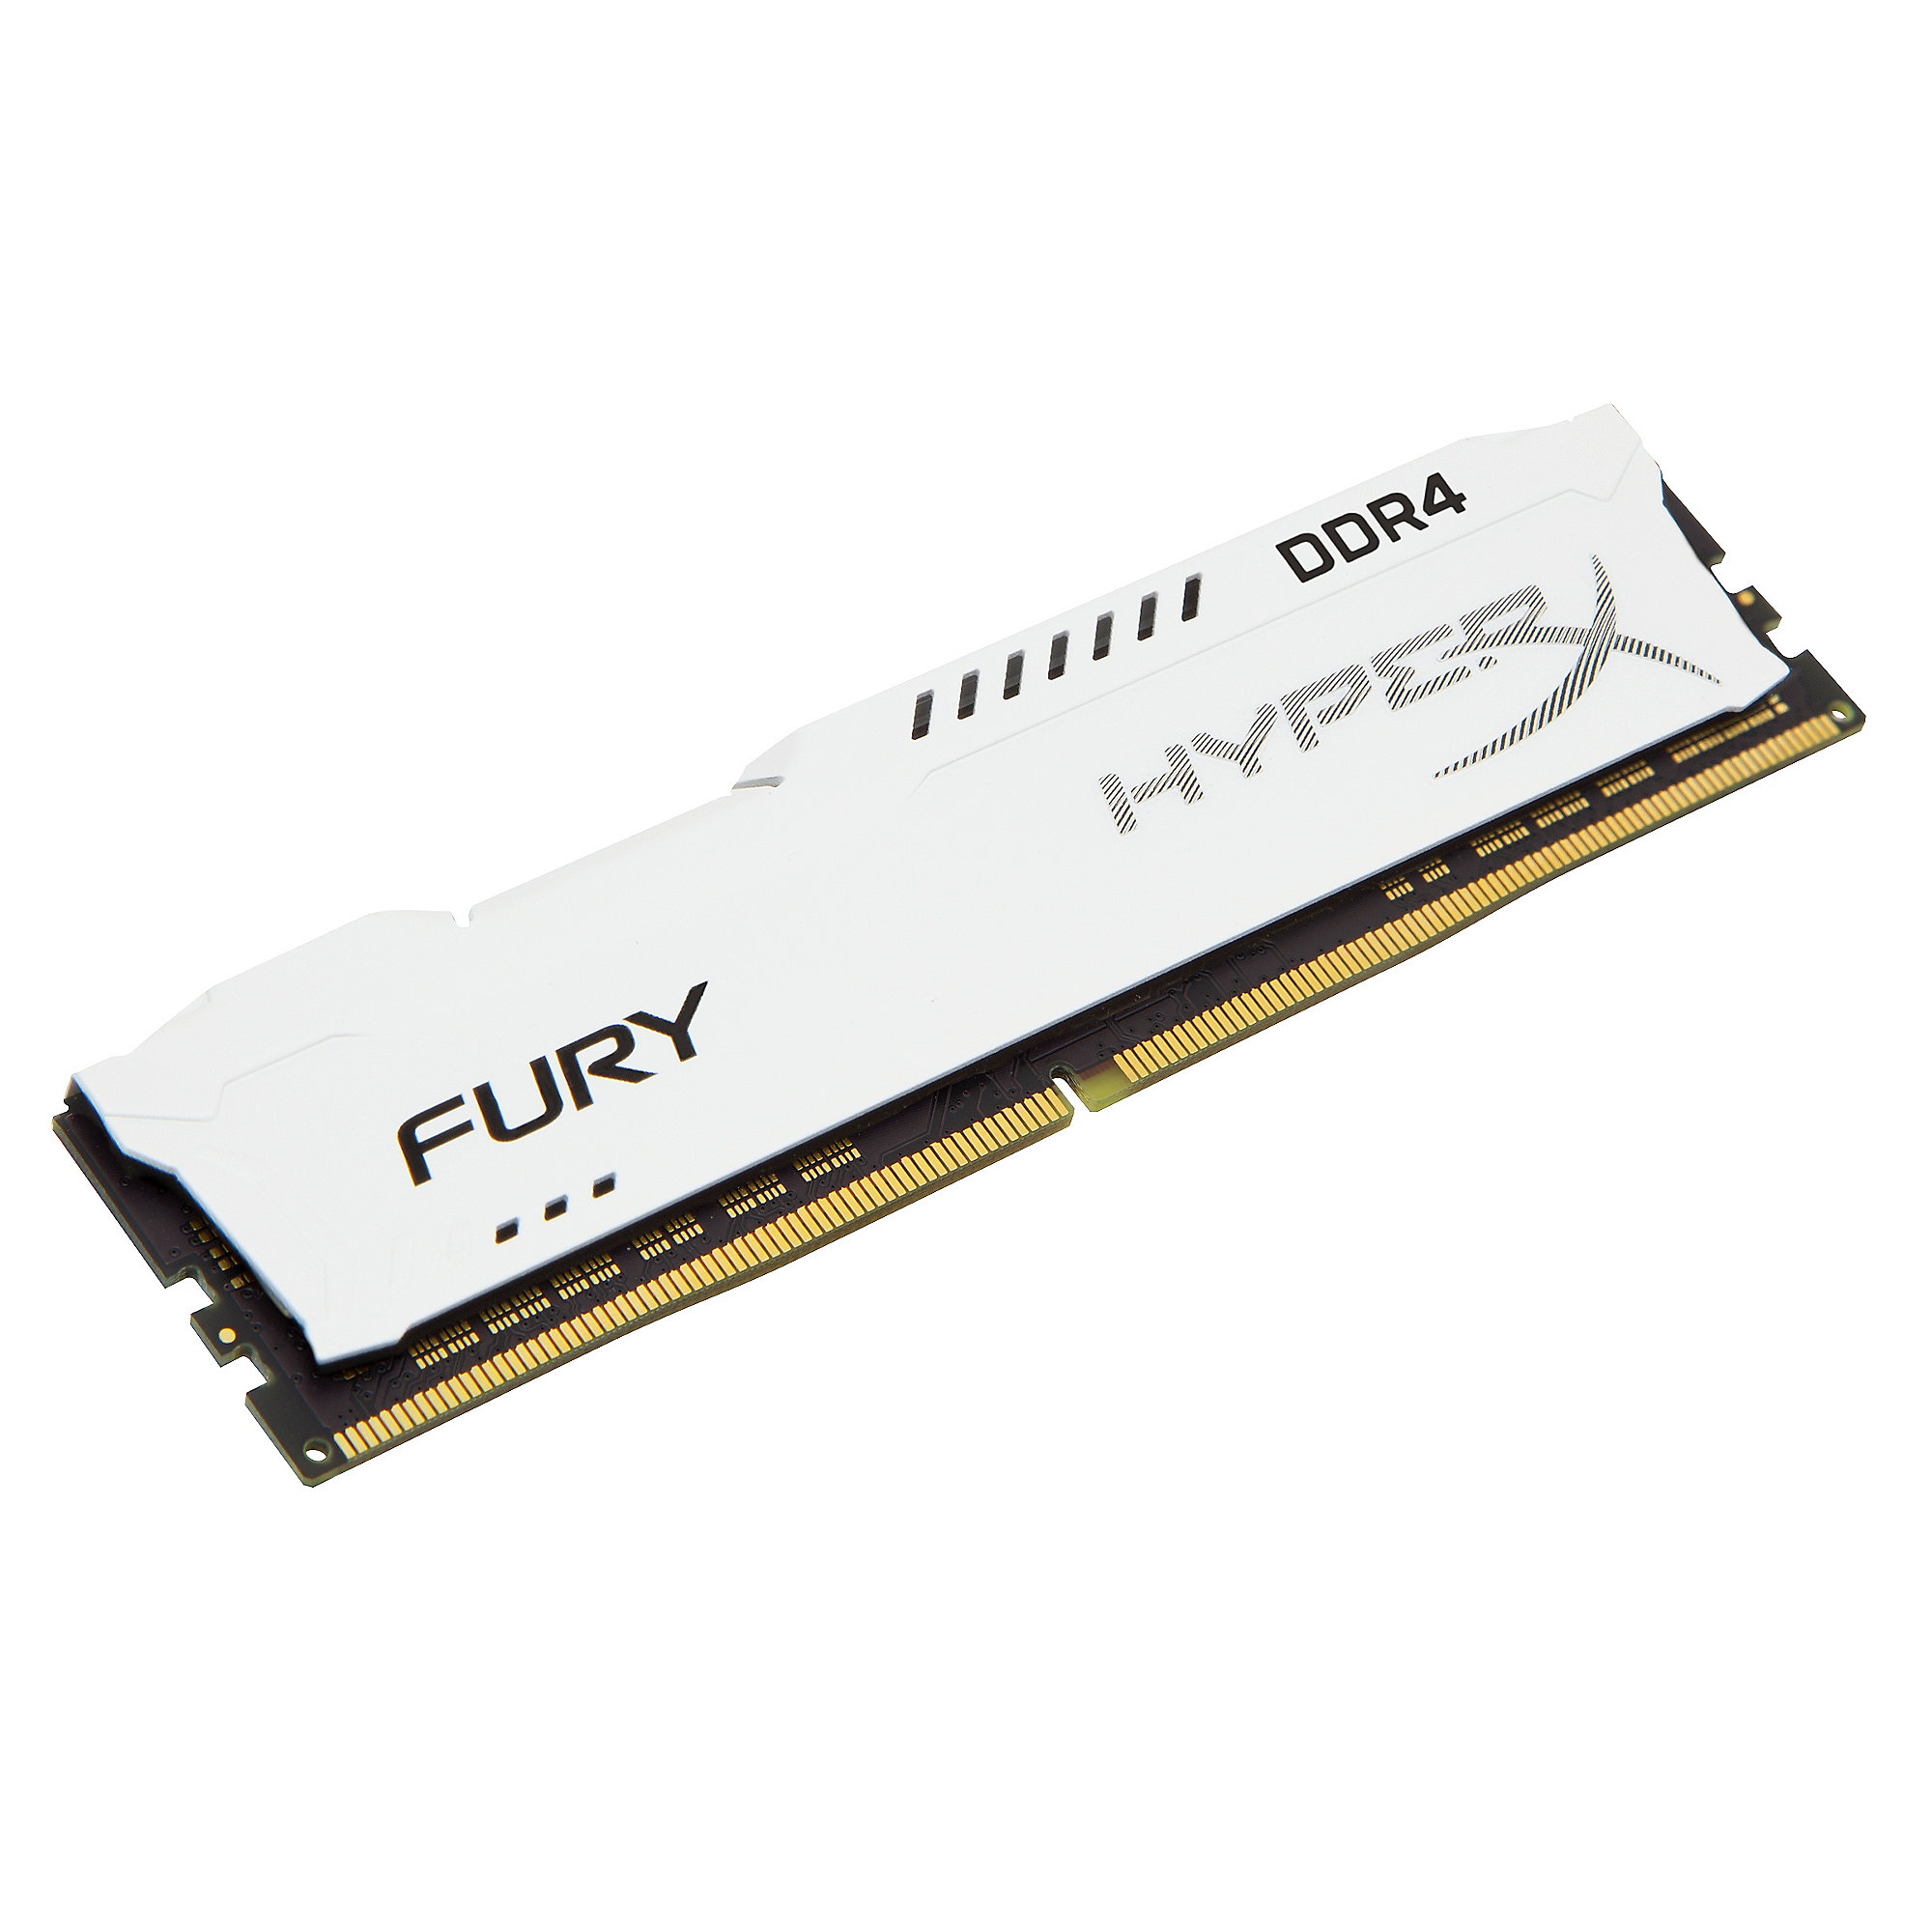 64GB (4x16GB) HyperX Fury weiß DDR4-2133 CL14 RAM Kit